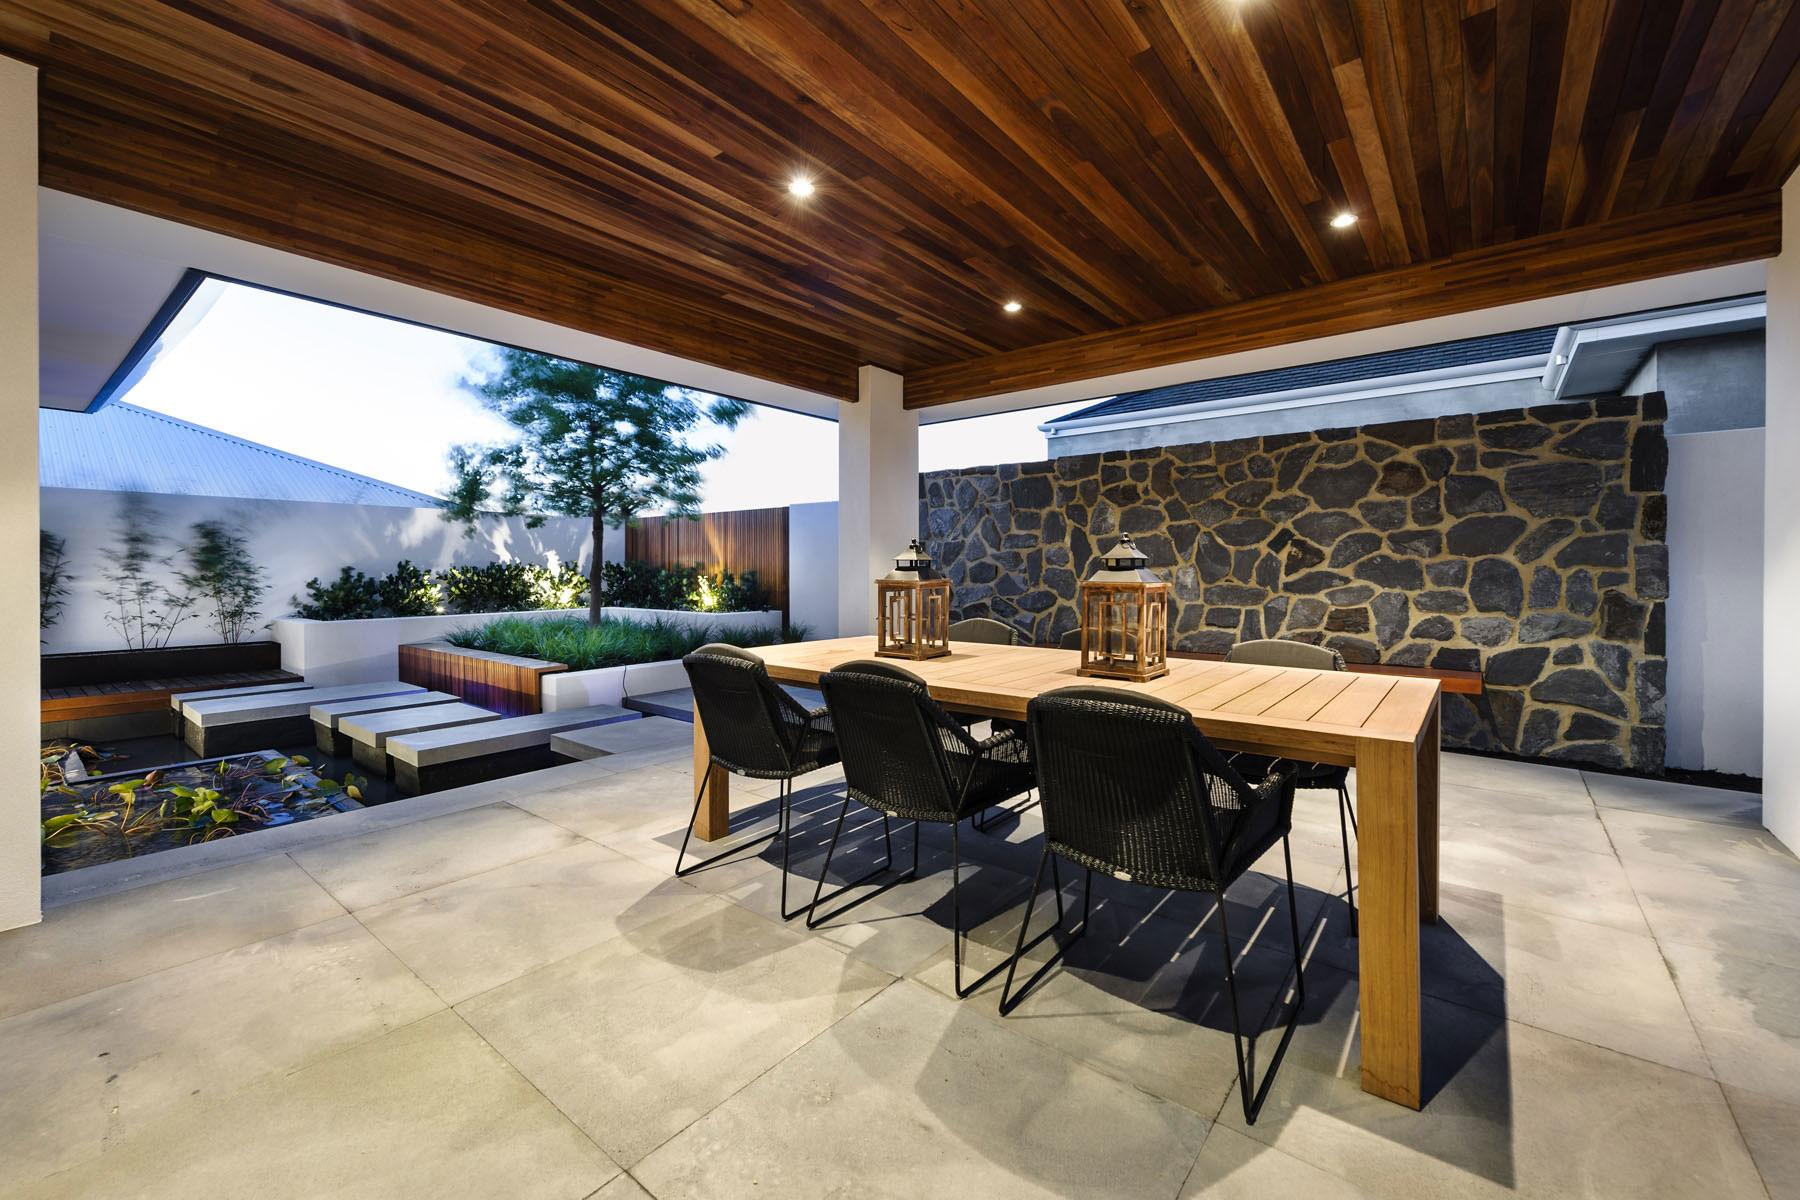 Water Feature Outdoor Dining Table Stone Wall House